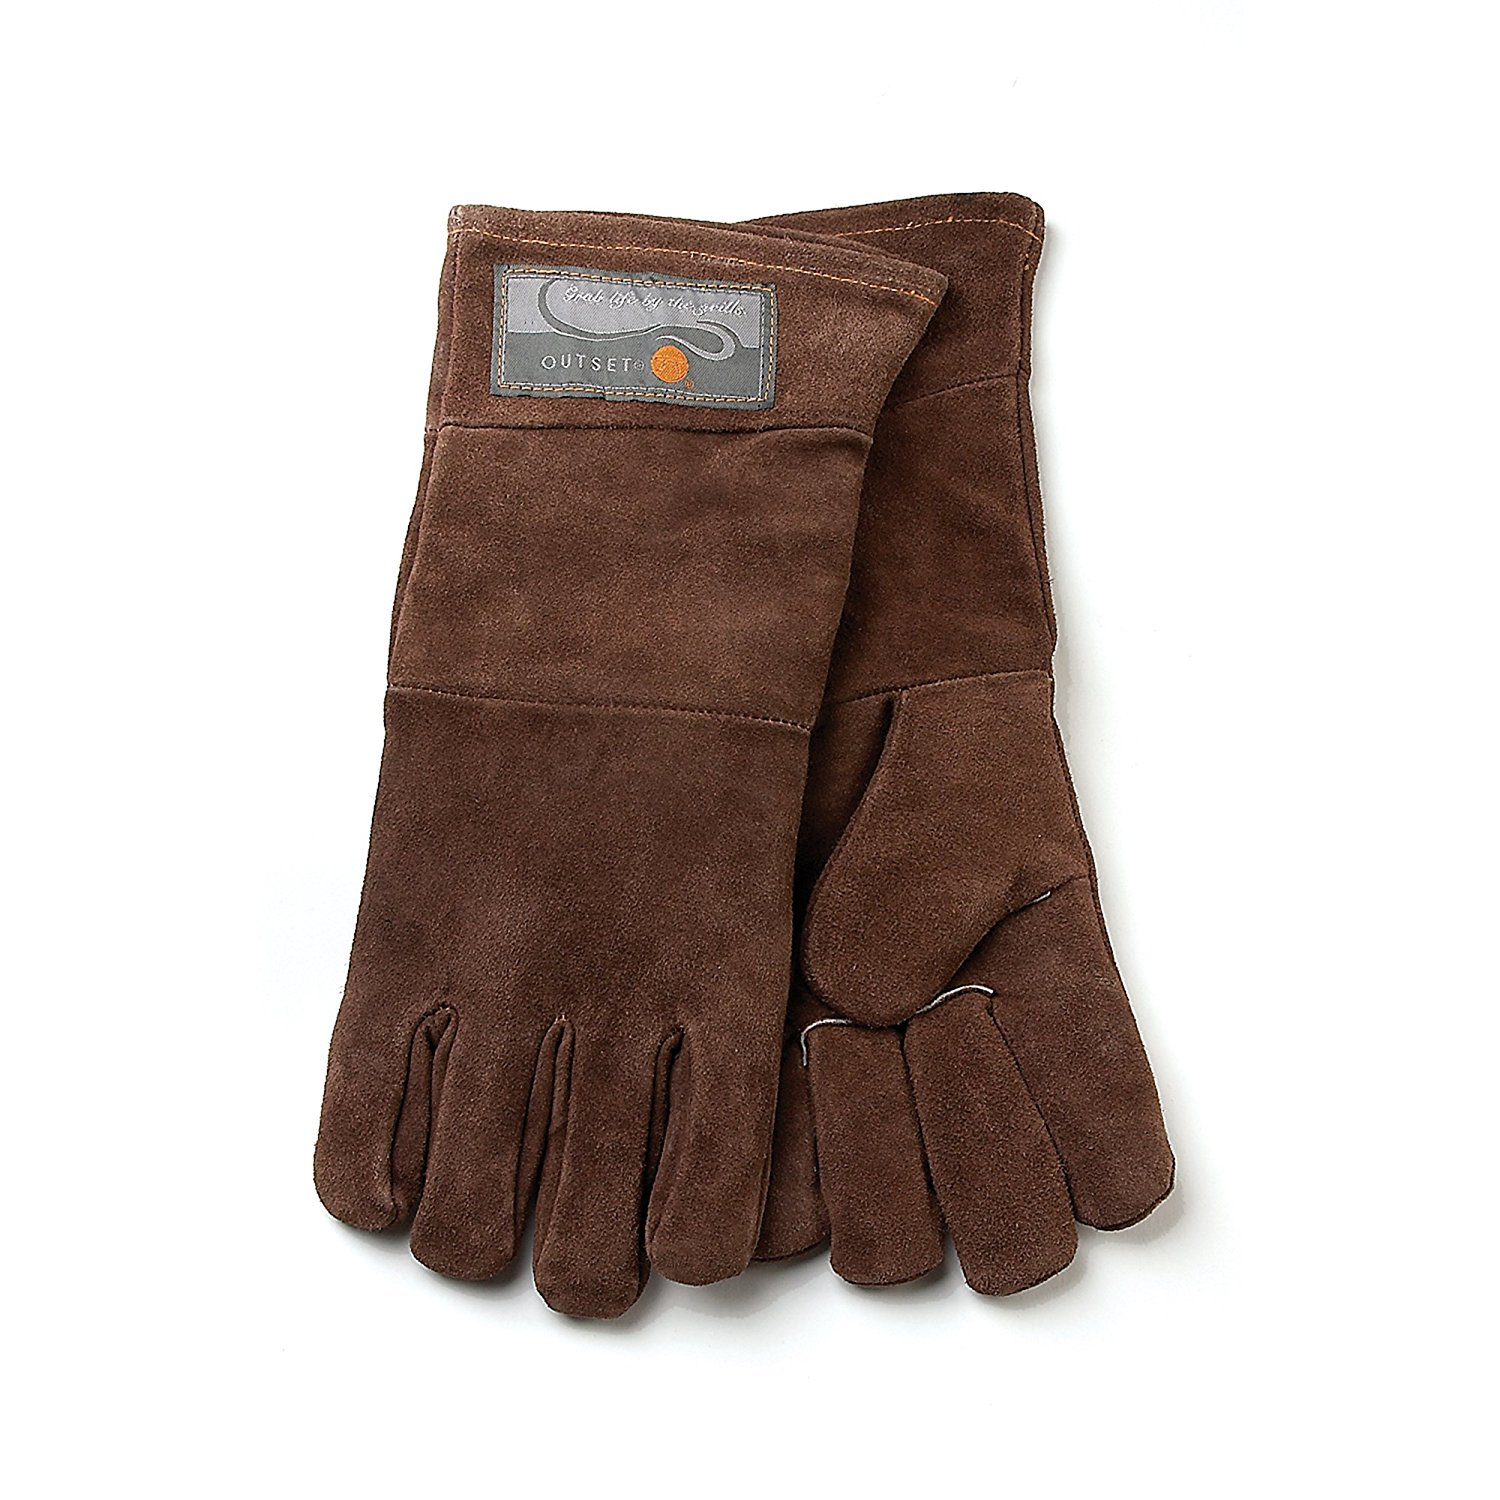 Outset F234 Leather Grill Gloves